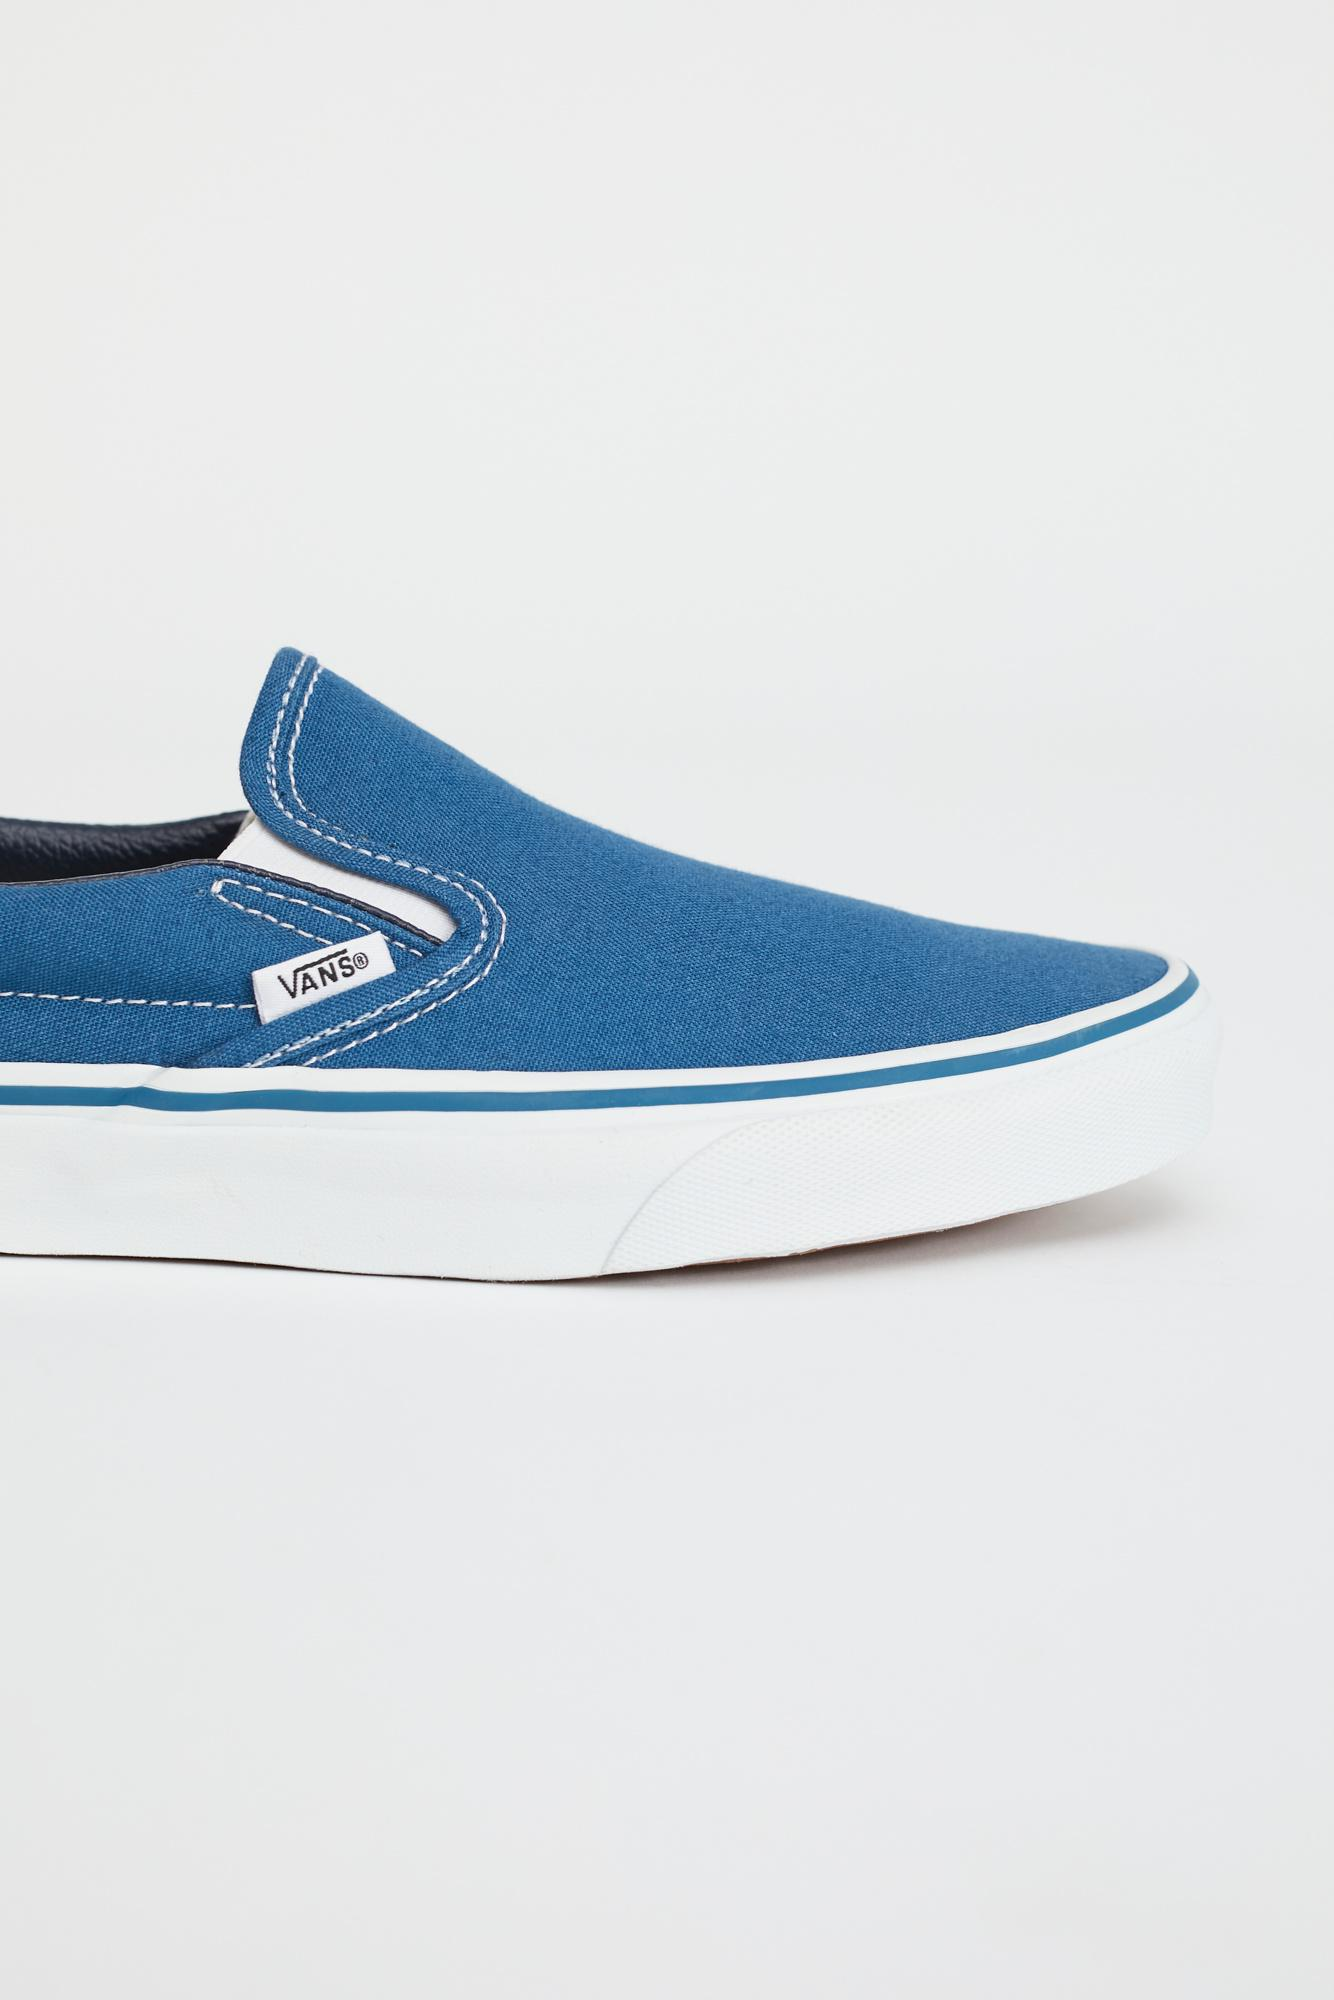 Free People Canvas Classic Slip On Trainer By Vans - Chemise in Navy (Blue)